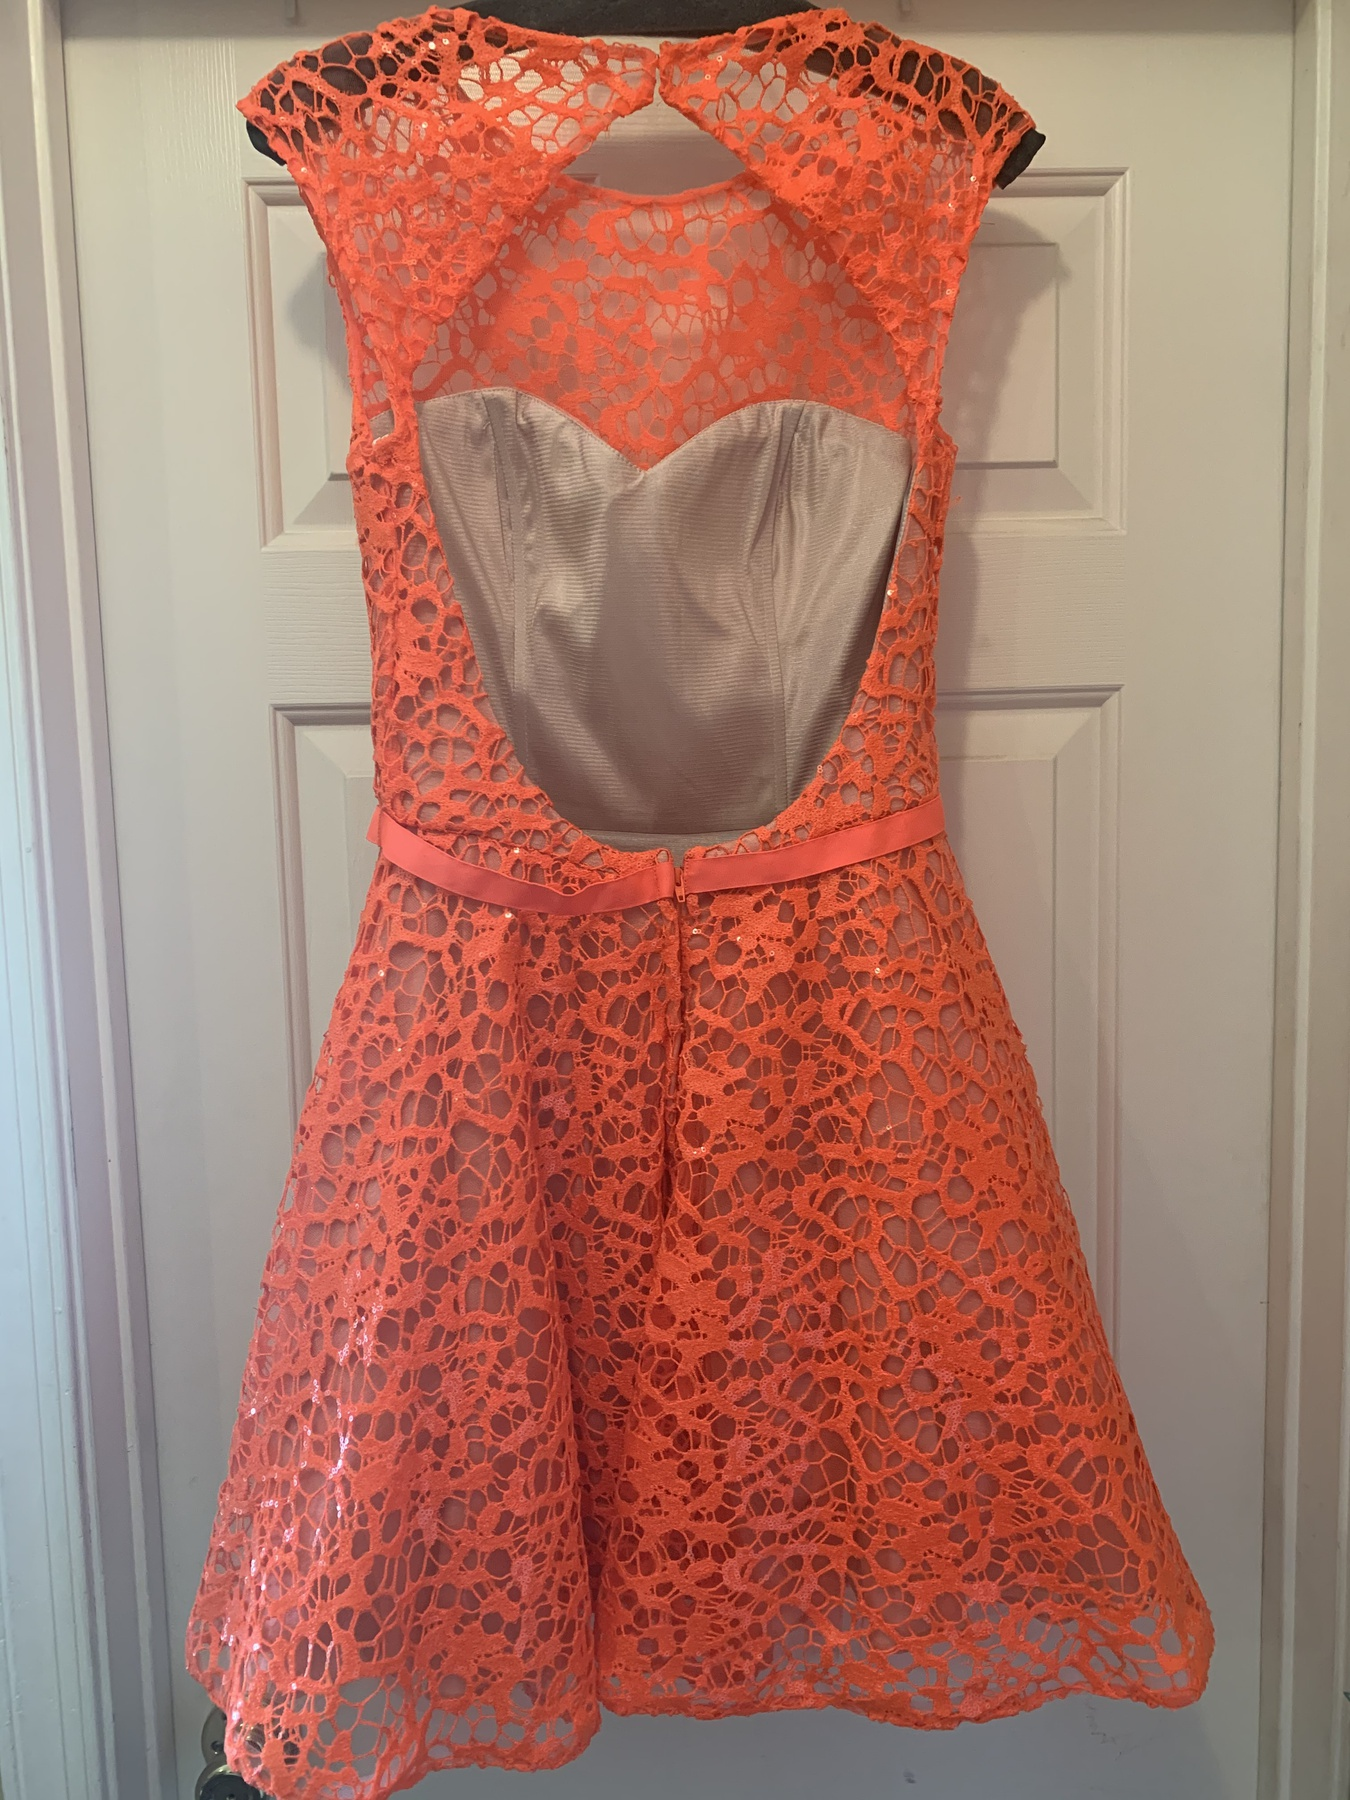 Jovani Orange Size 8 Homecoming Cocktail Dress on Queenly